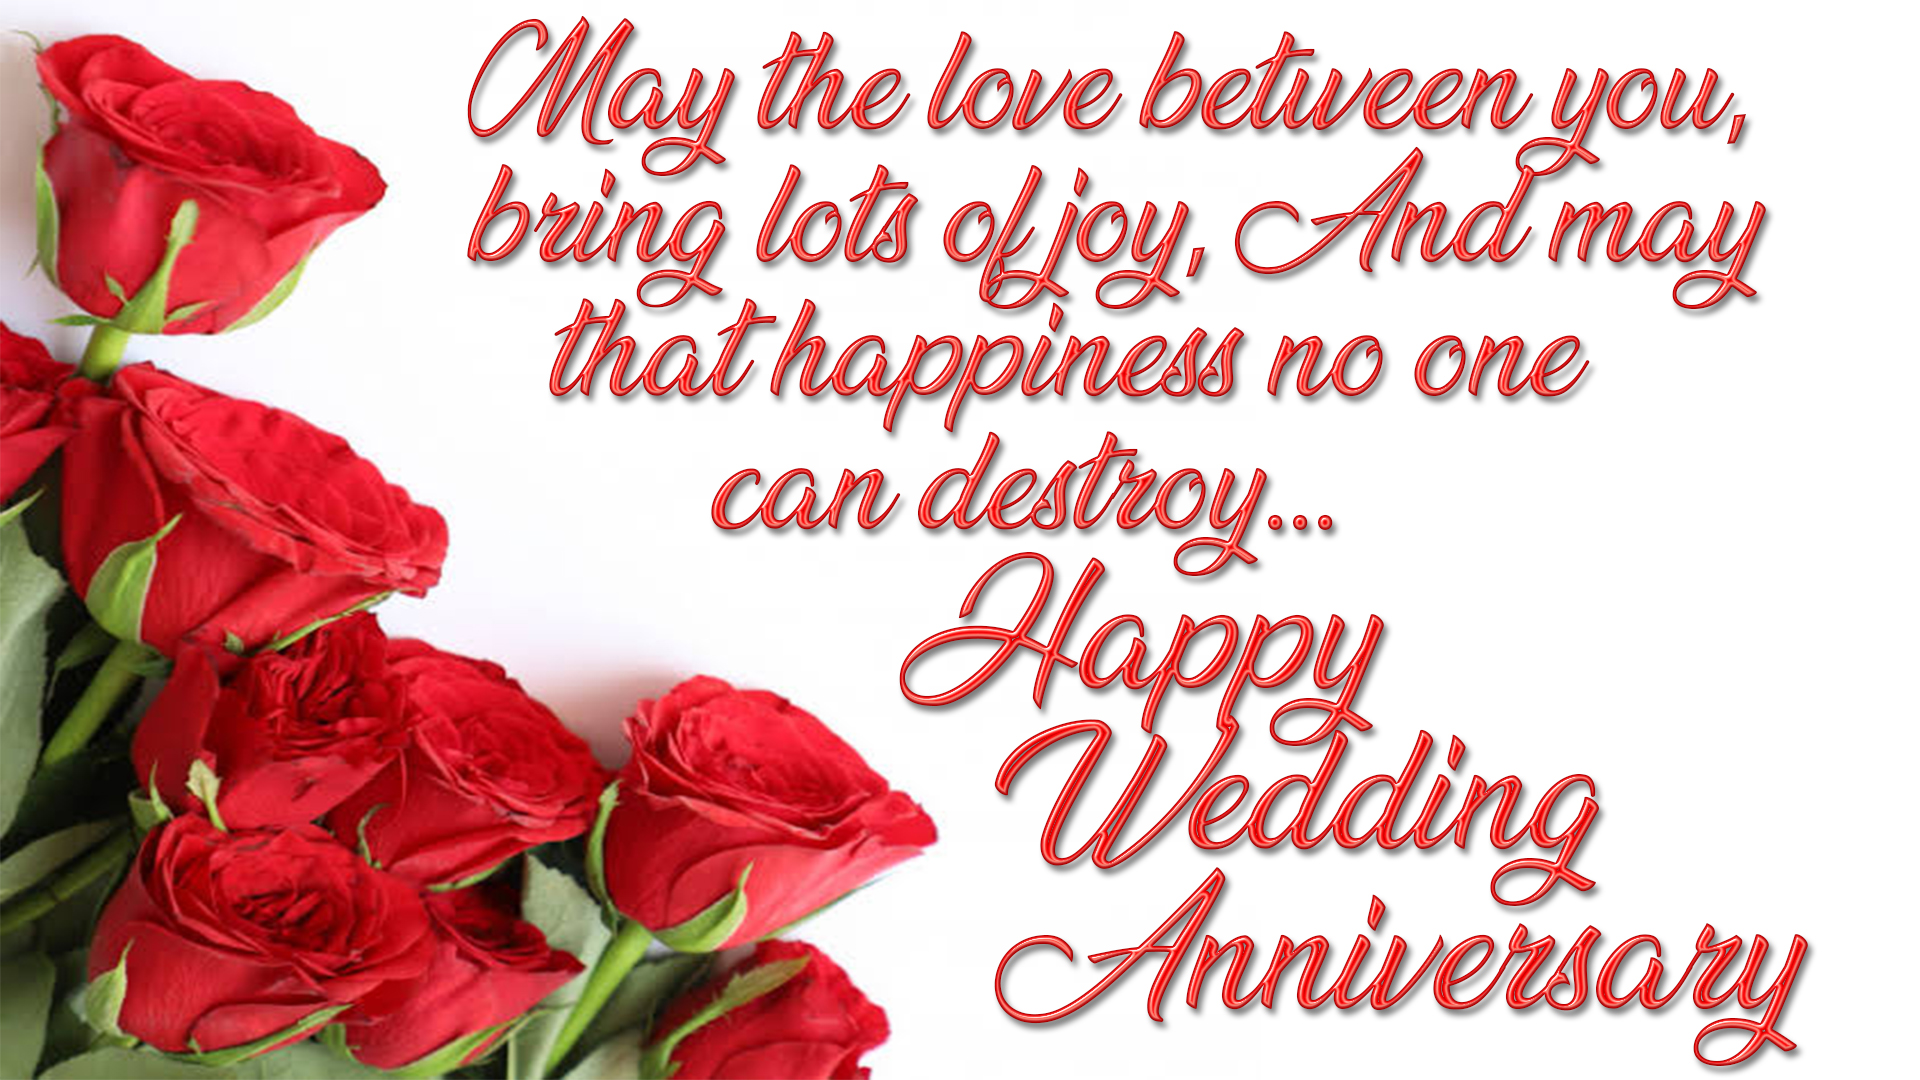 Happy Anniversary Wishes Messages For Everyone In Your Life